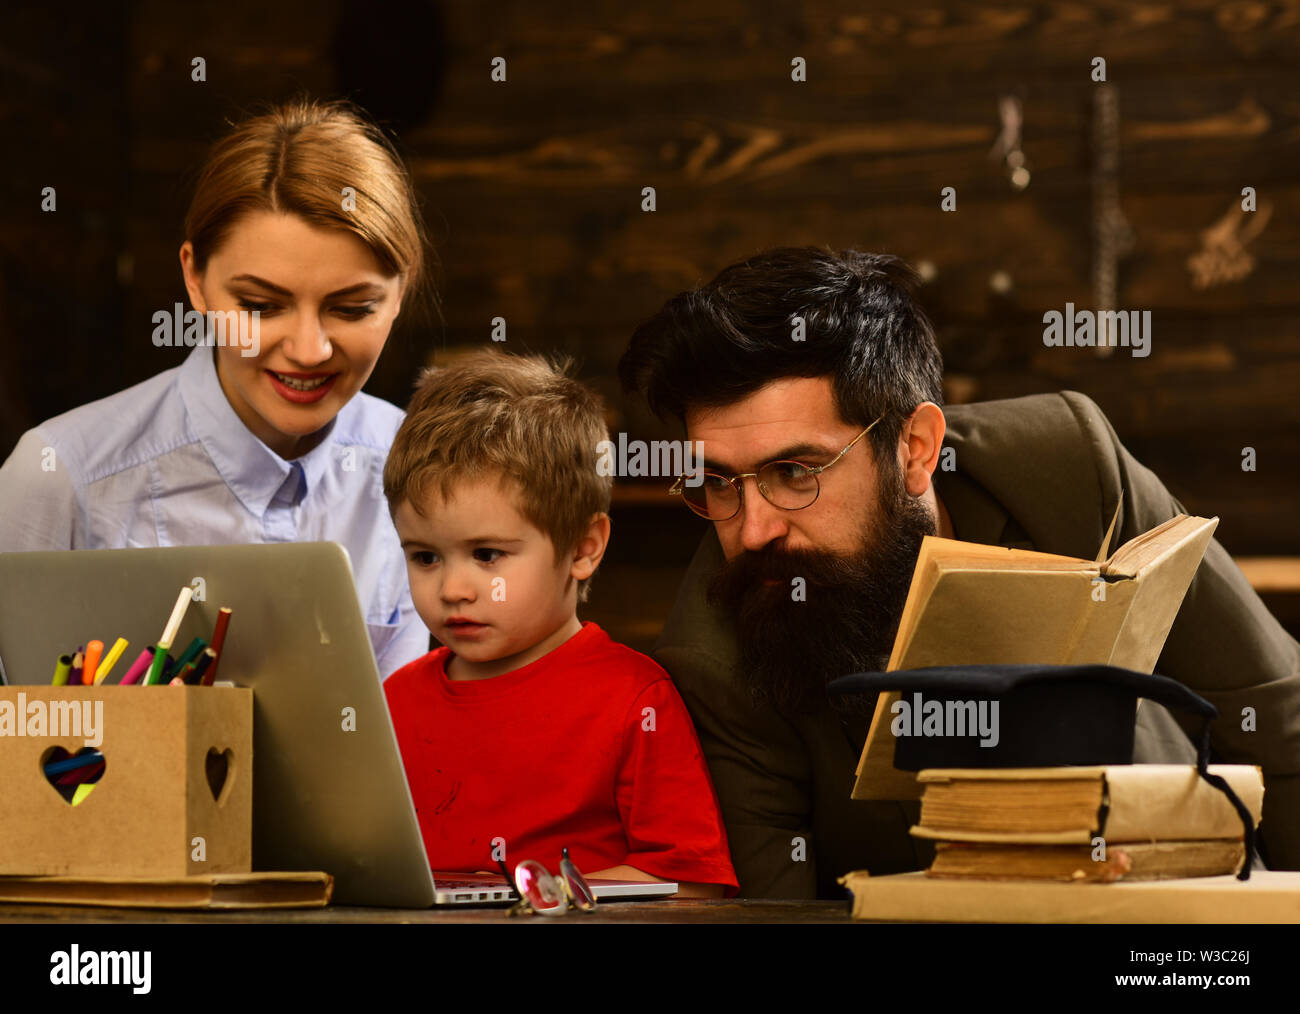 Friendly teacher and adult smiling student in classroom, Awesome teachers know about things that make students curious, Hipster is solving math exam, - Stock Image